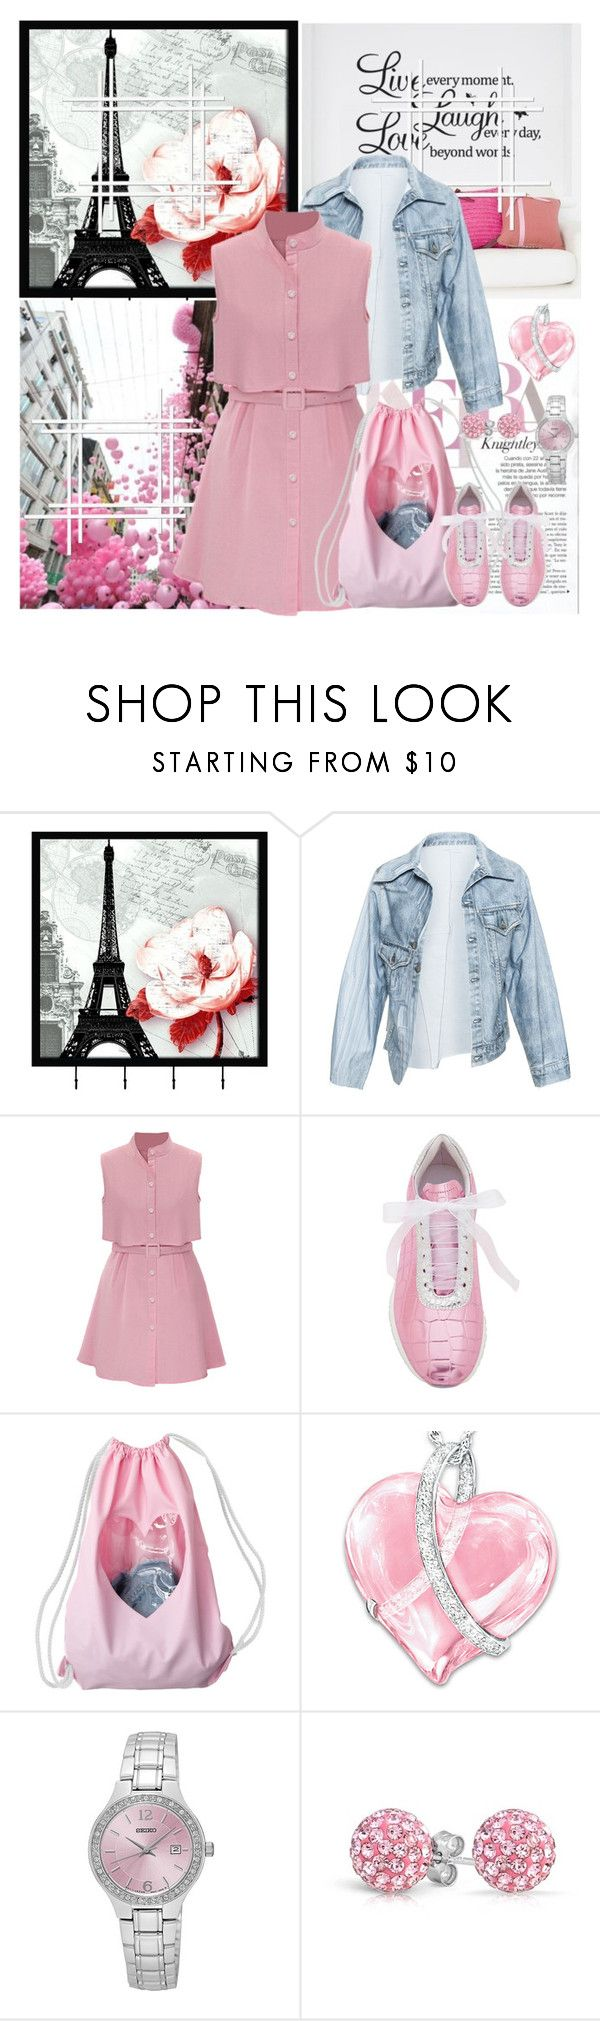 """Shirtdress - teen ager mode"" by kmaryk ❤ liked on Polyvore featuring Universal Lighting and Decor, WALL, Faustine Steinmetz, Joshua's, The Bradford Exchange, Seiko and Bling Jewelry"